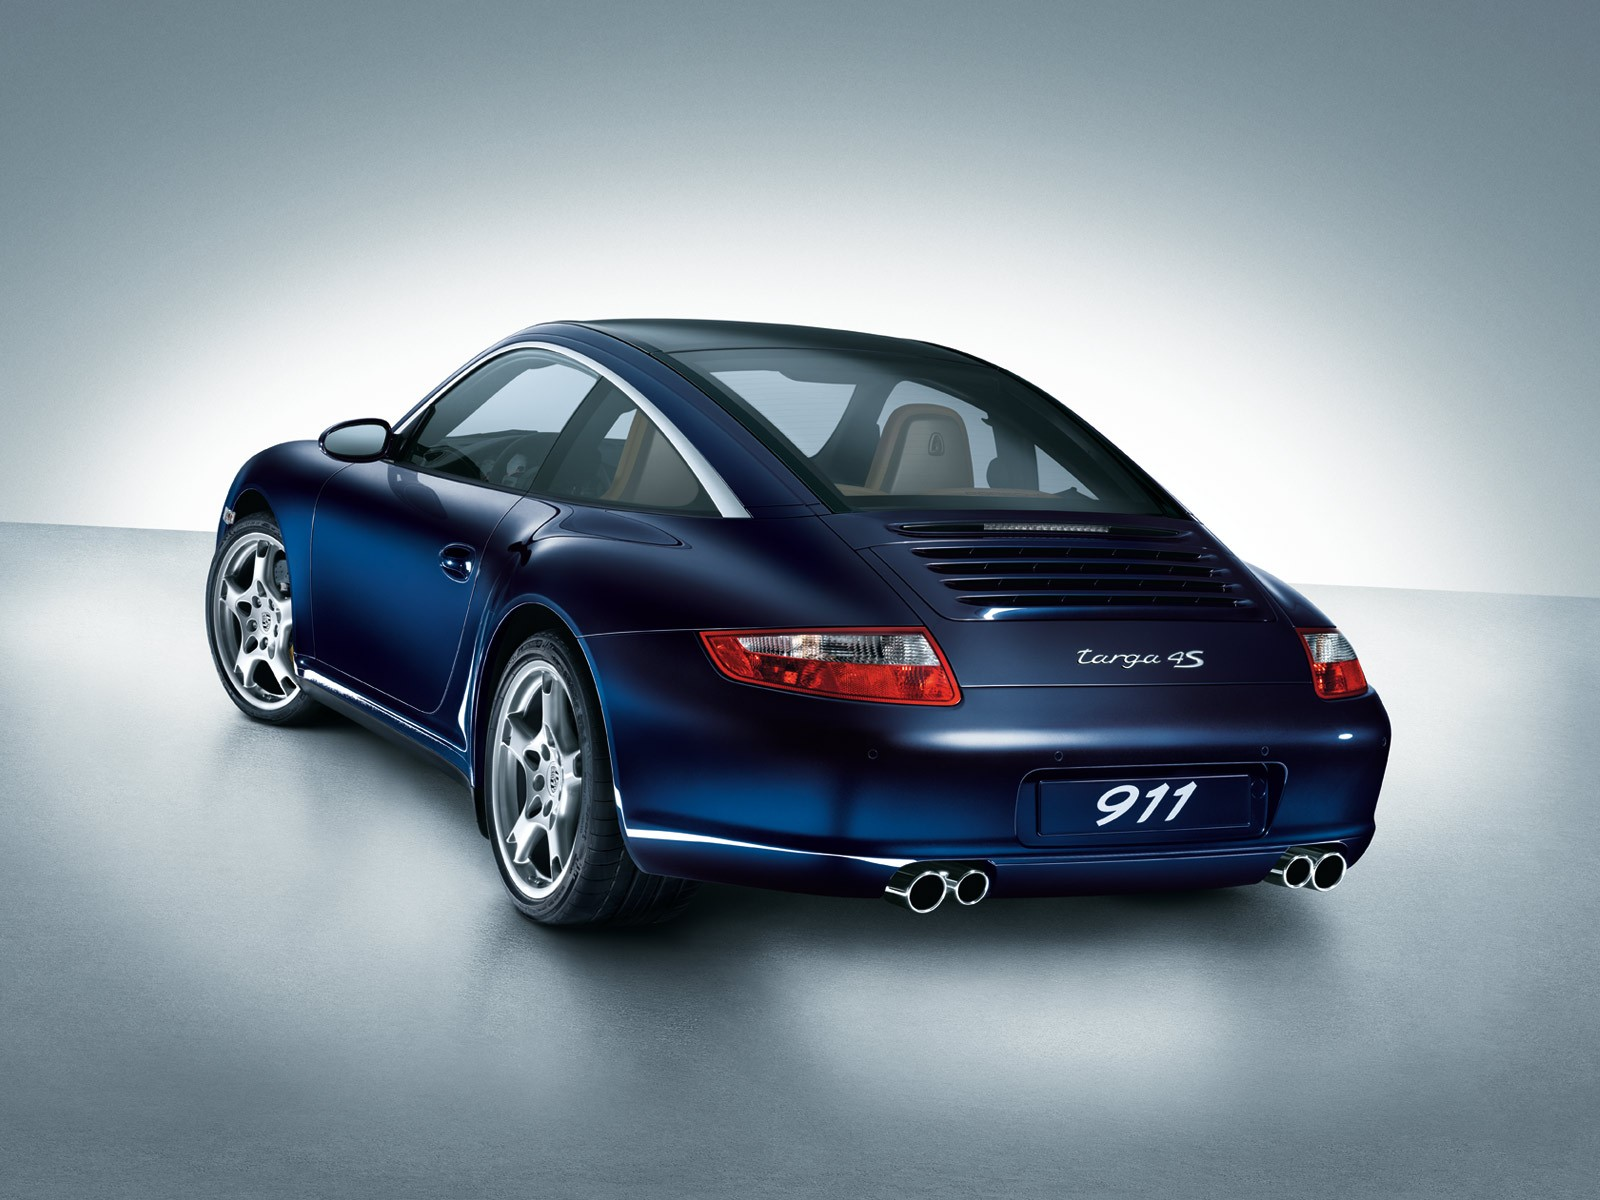 porsche 911 carrera targa 4s 997 specs 2006 2007. Black Bedroom Furniture Sets. Home Design Ideas